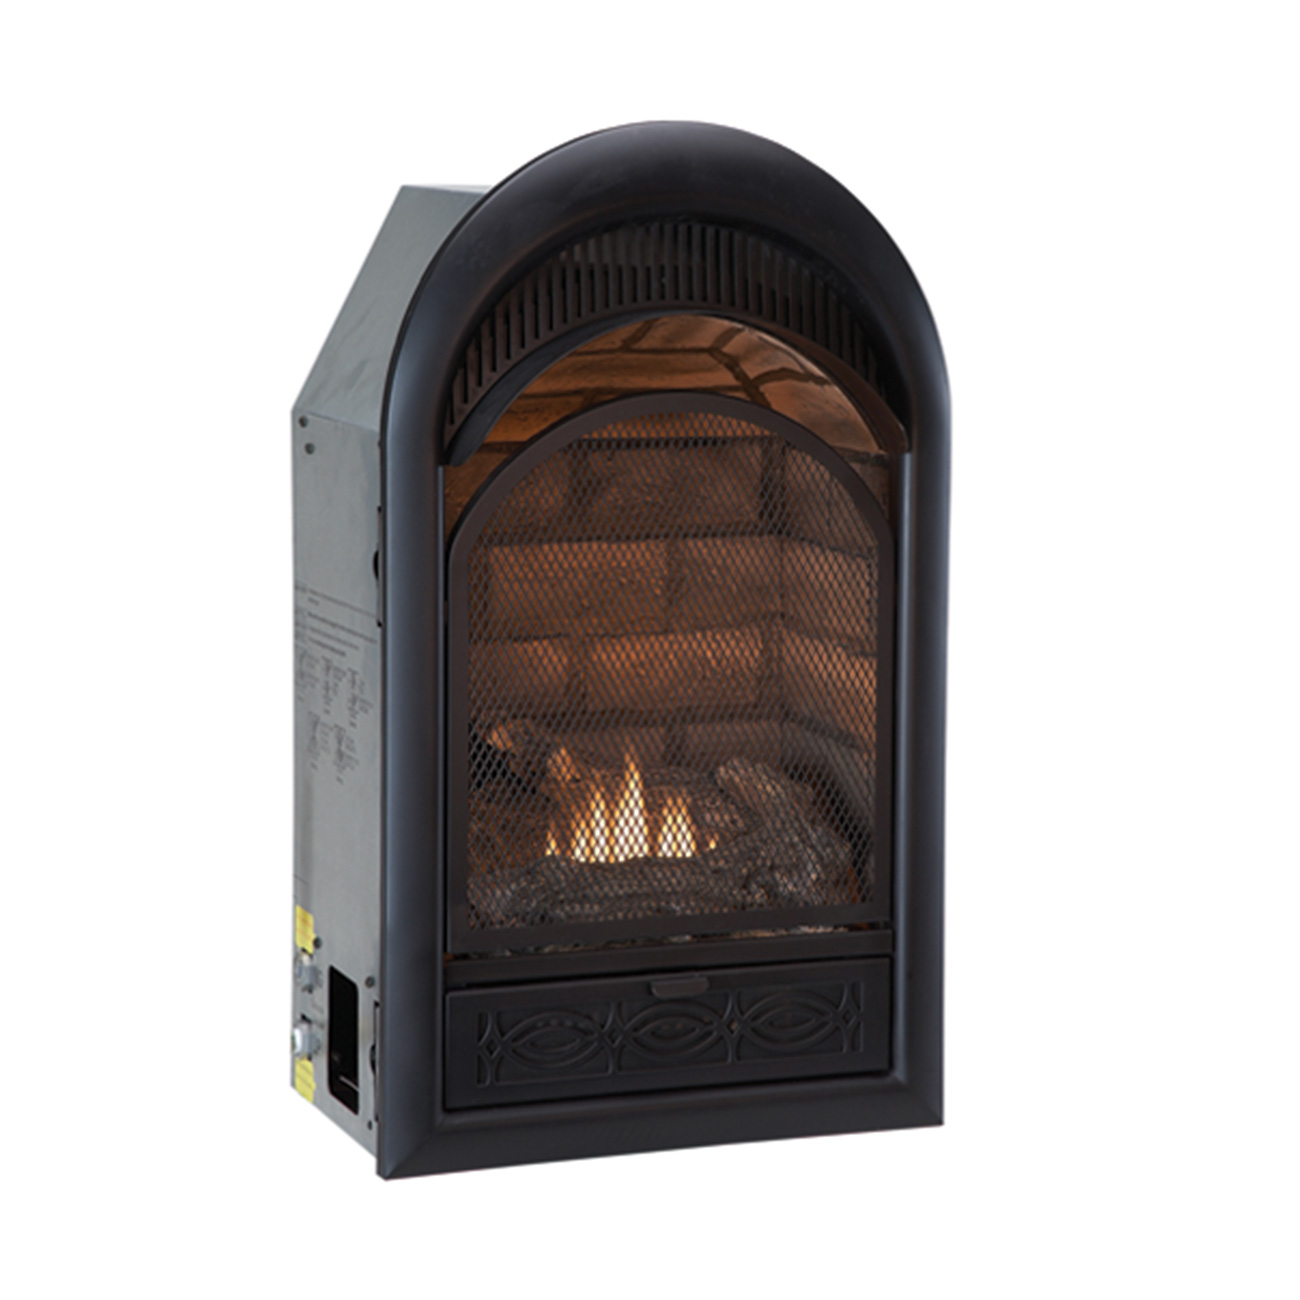 Ventless Dual Fuel Fireplace Insert 10 000 Btu Procom